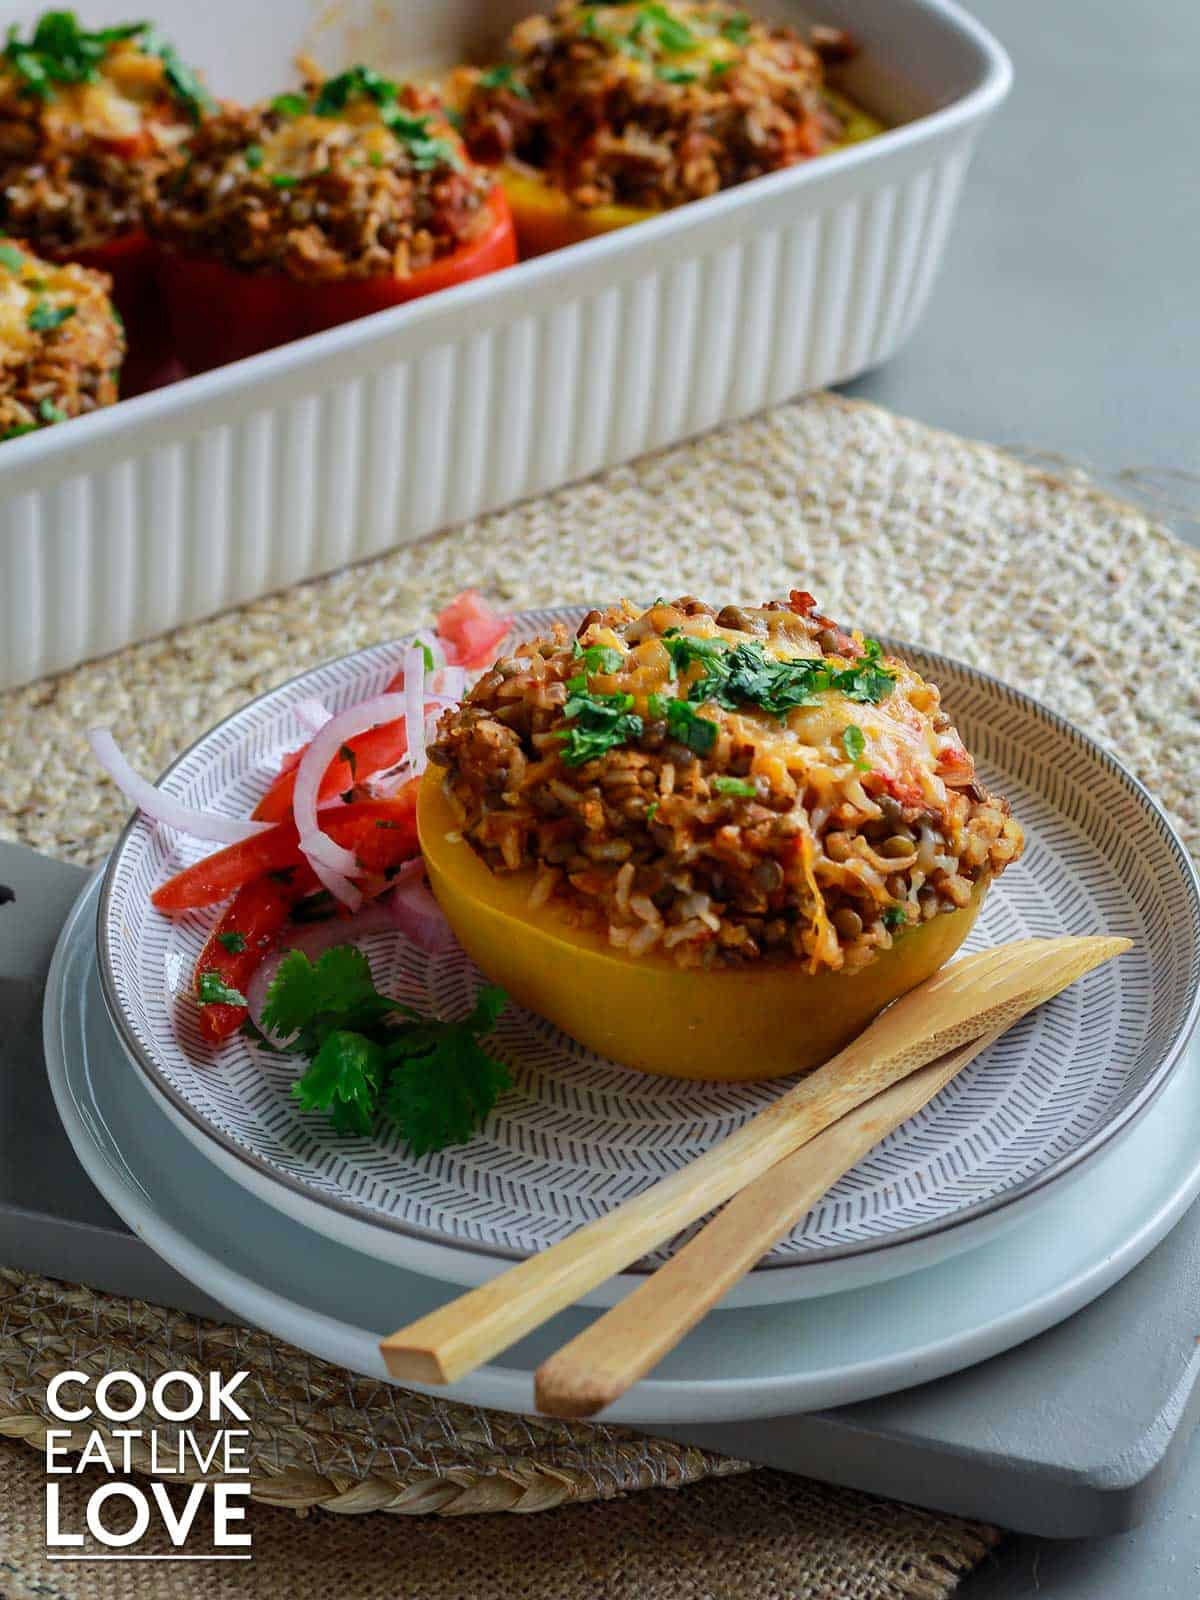 Lentil and brown rice peppers are topped with cheese and then baked in the oven.